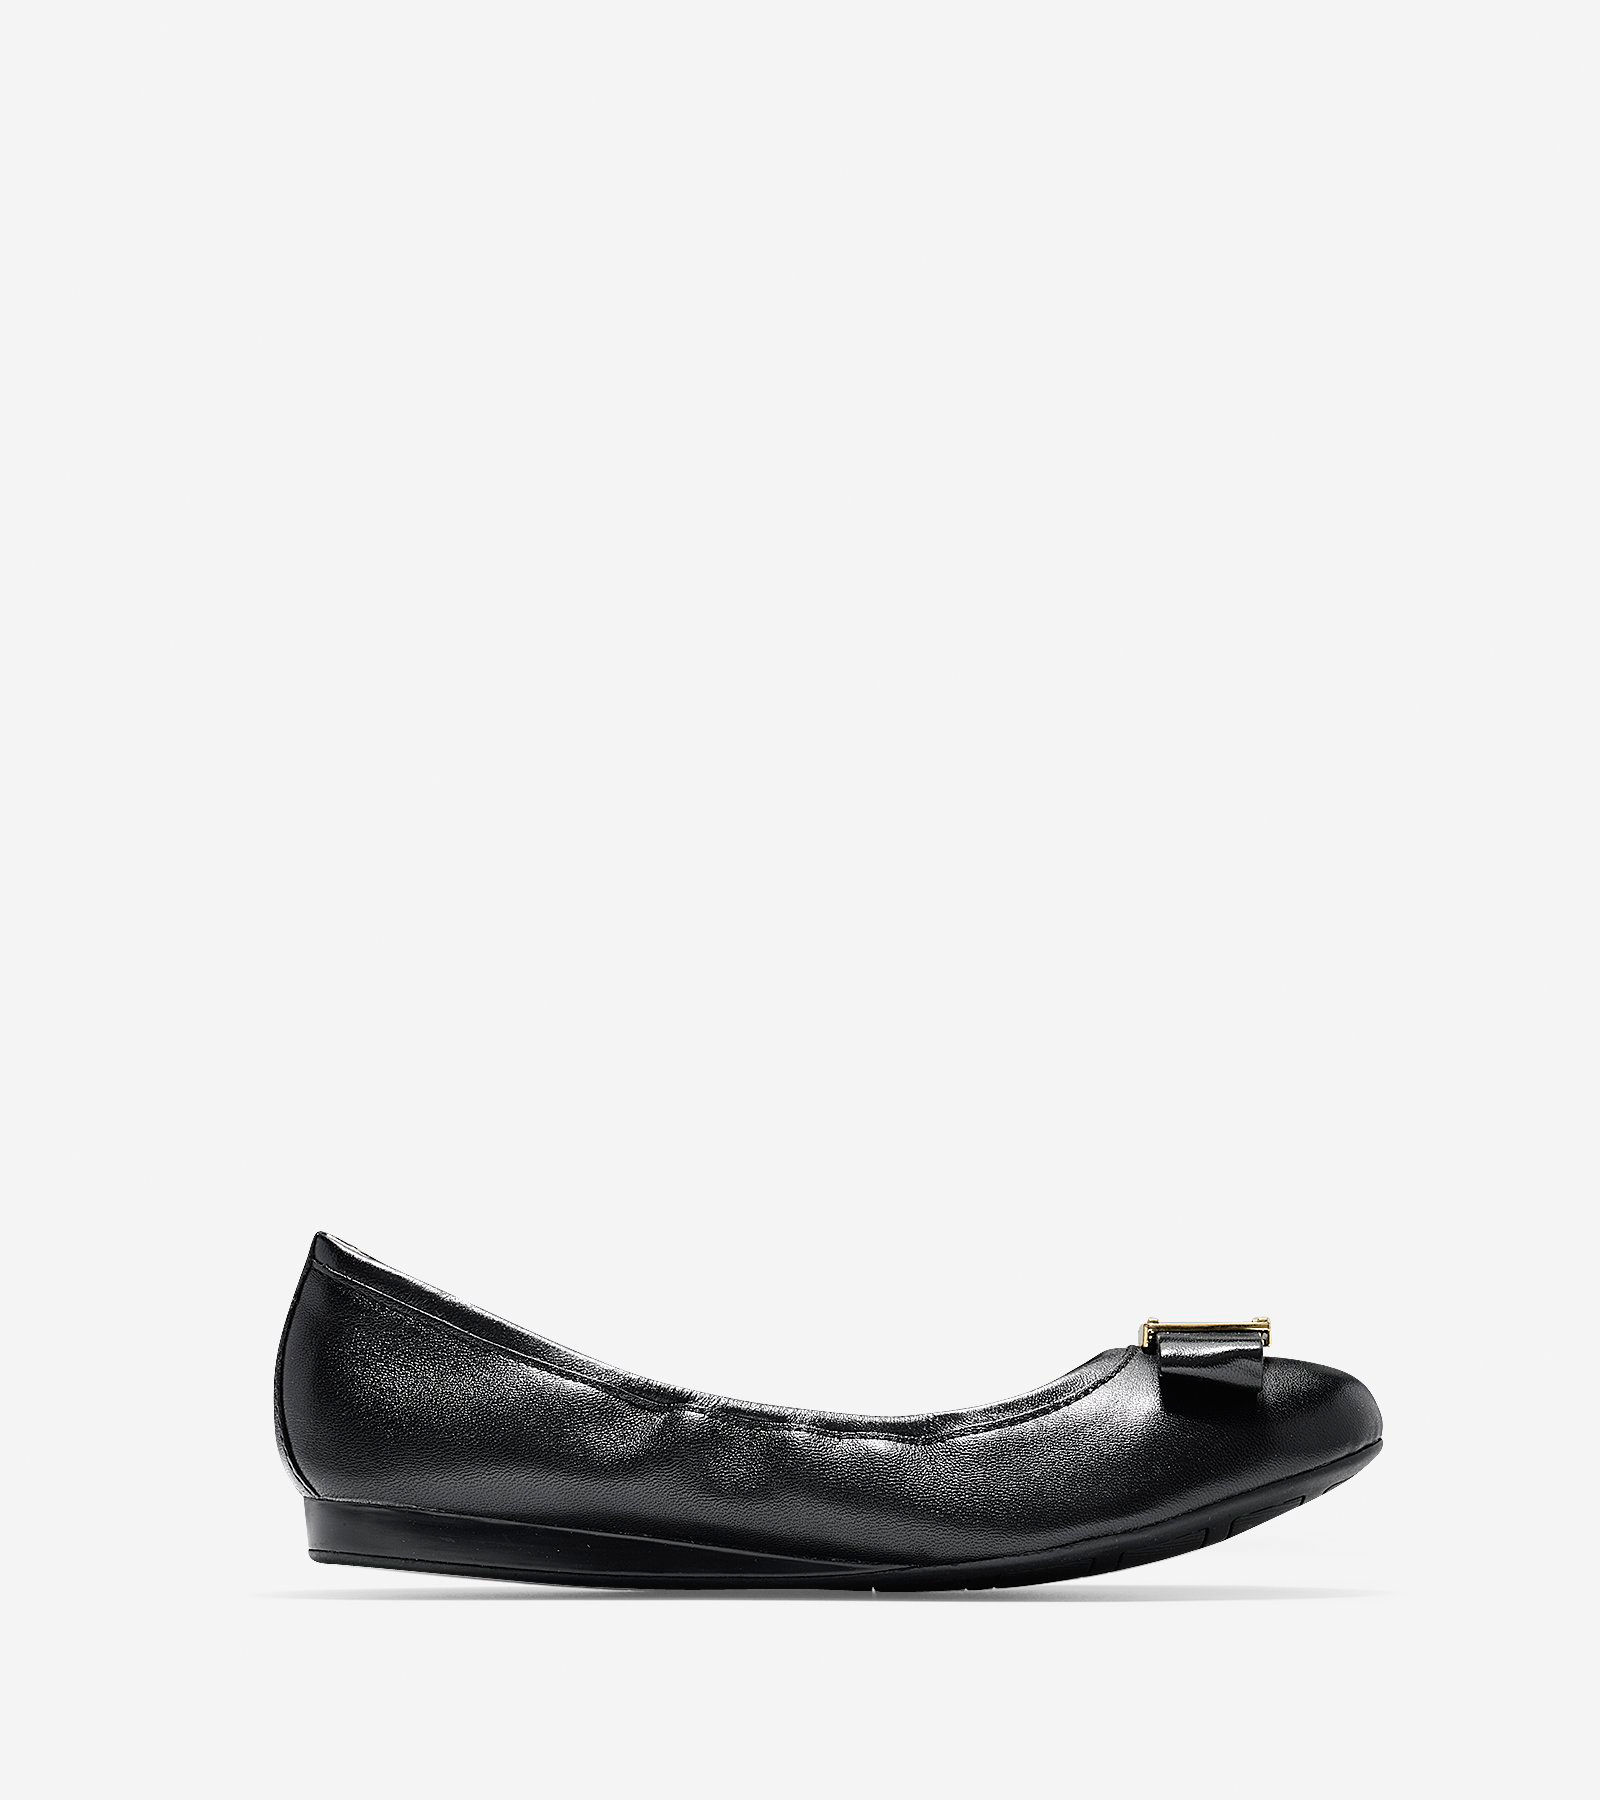 Women's Emory Bow Ballet Flats in Black | Cole Haan